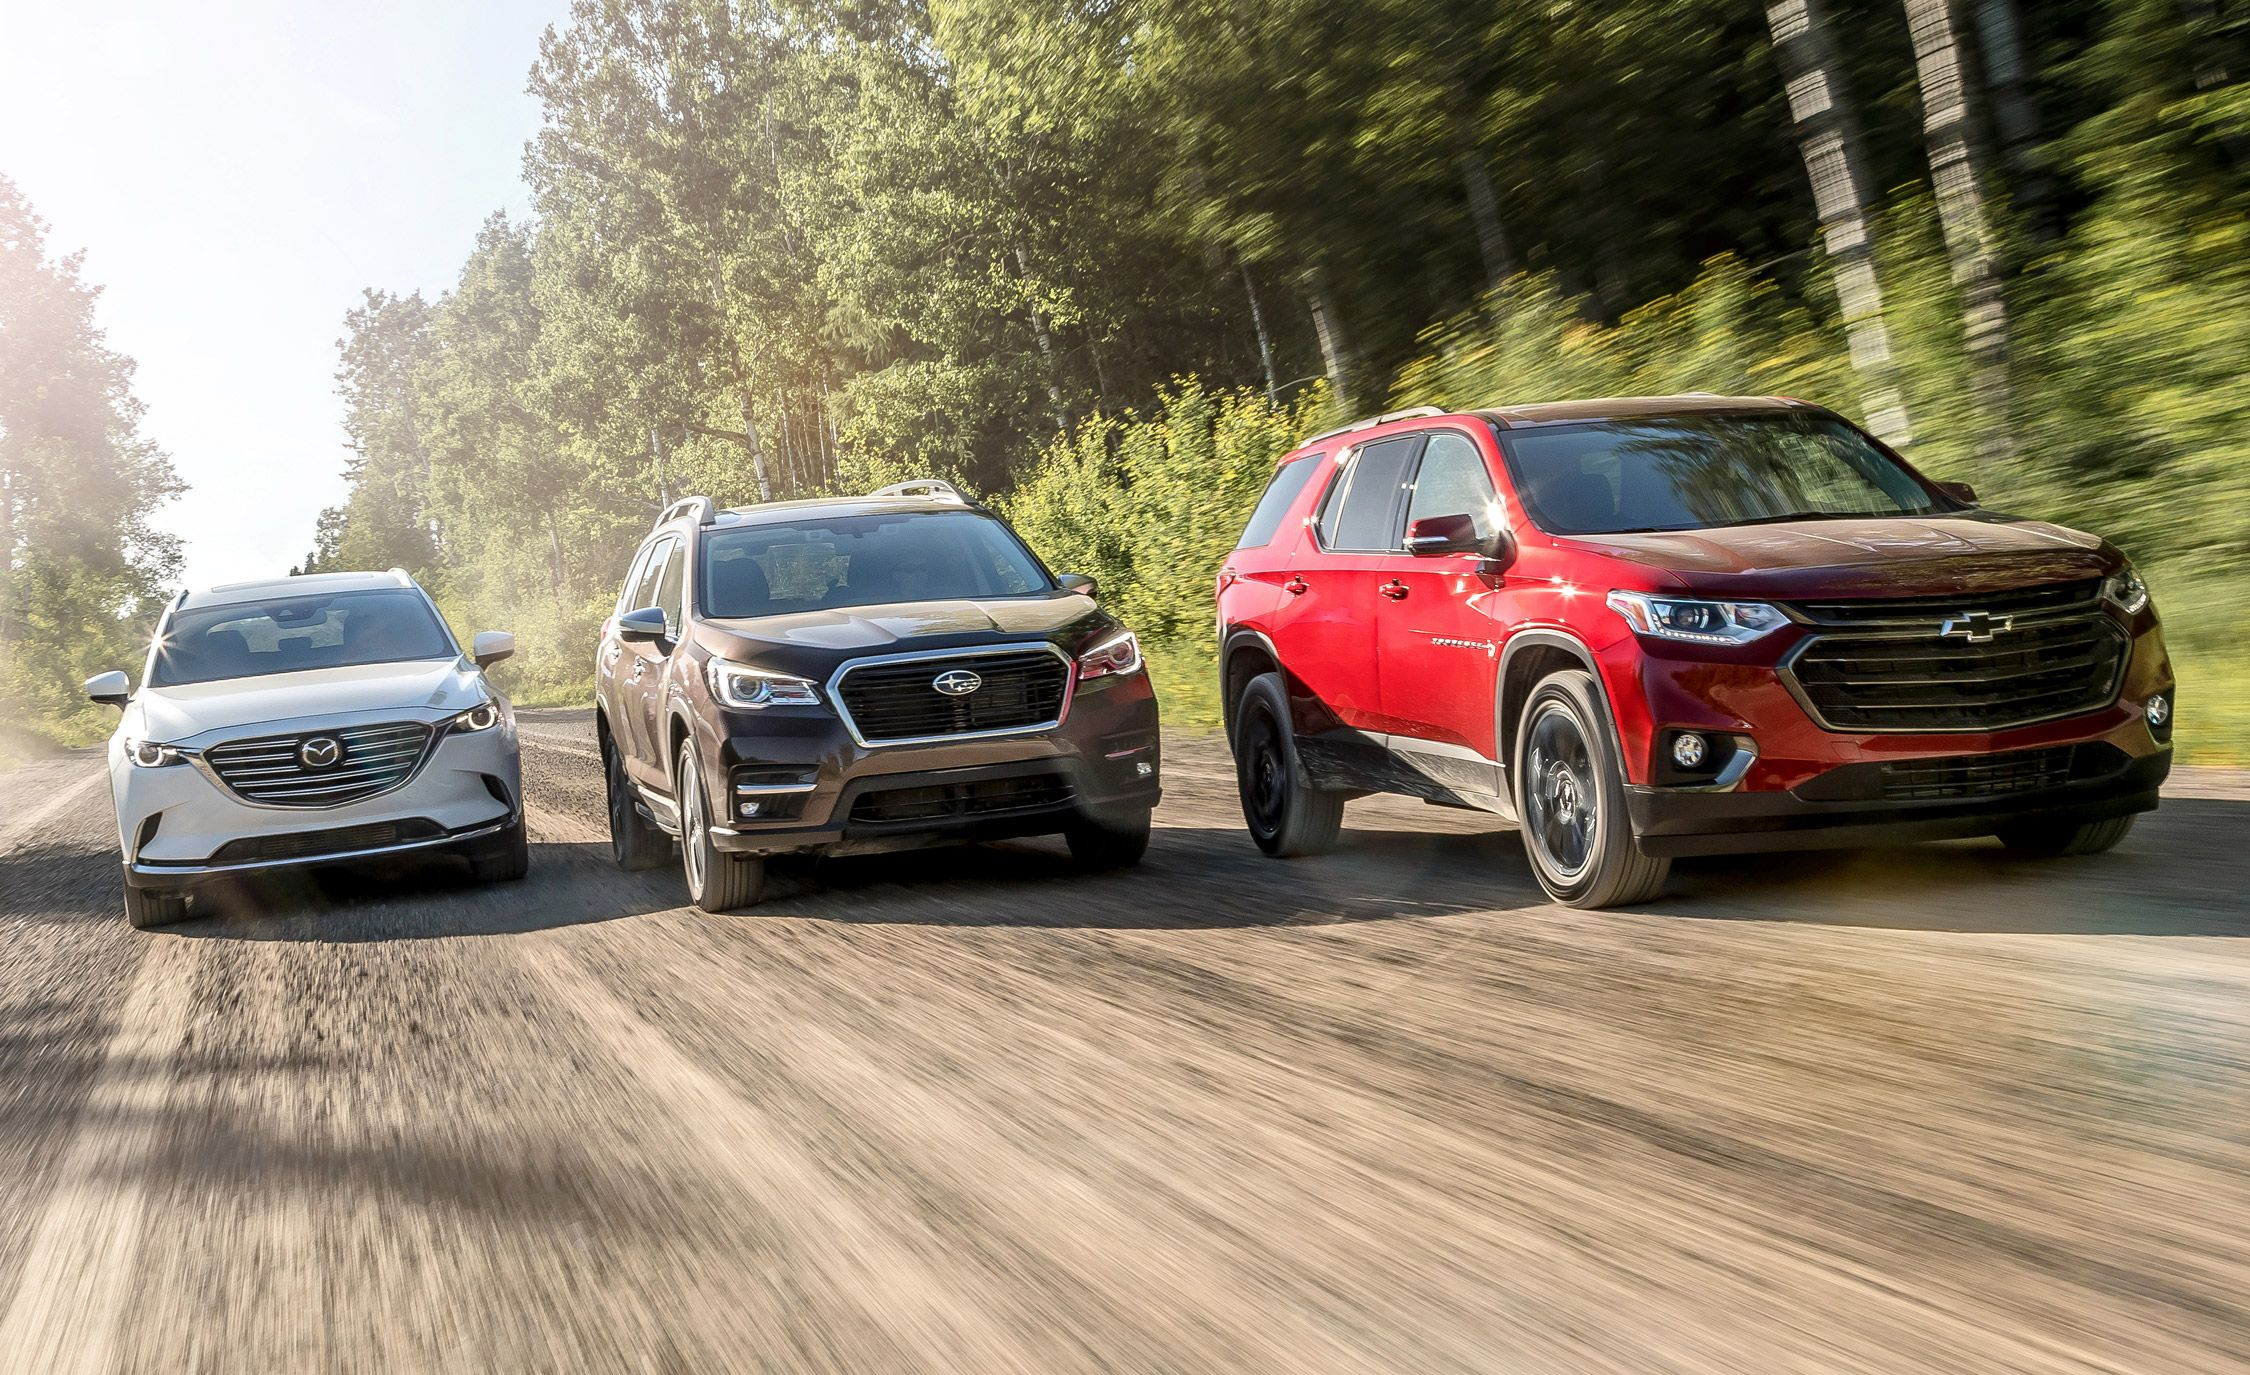 Three-Row SUVs Compared: Subaru Ascent and Chevrolet Traverse Take on Our Reigning Champ, the Mazda CX-9